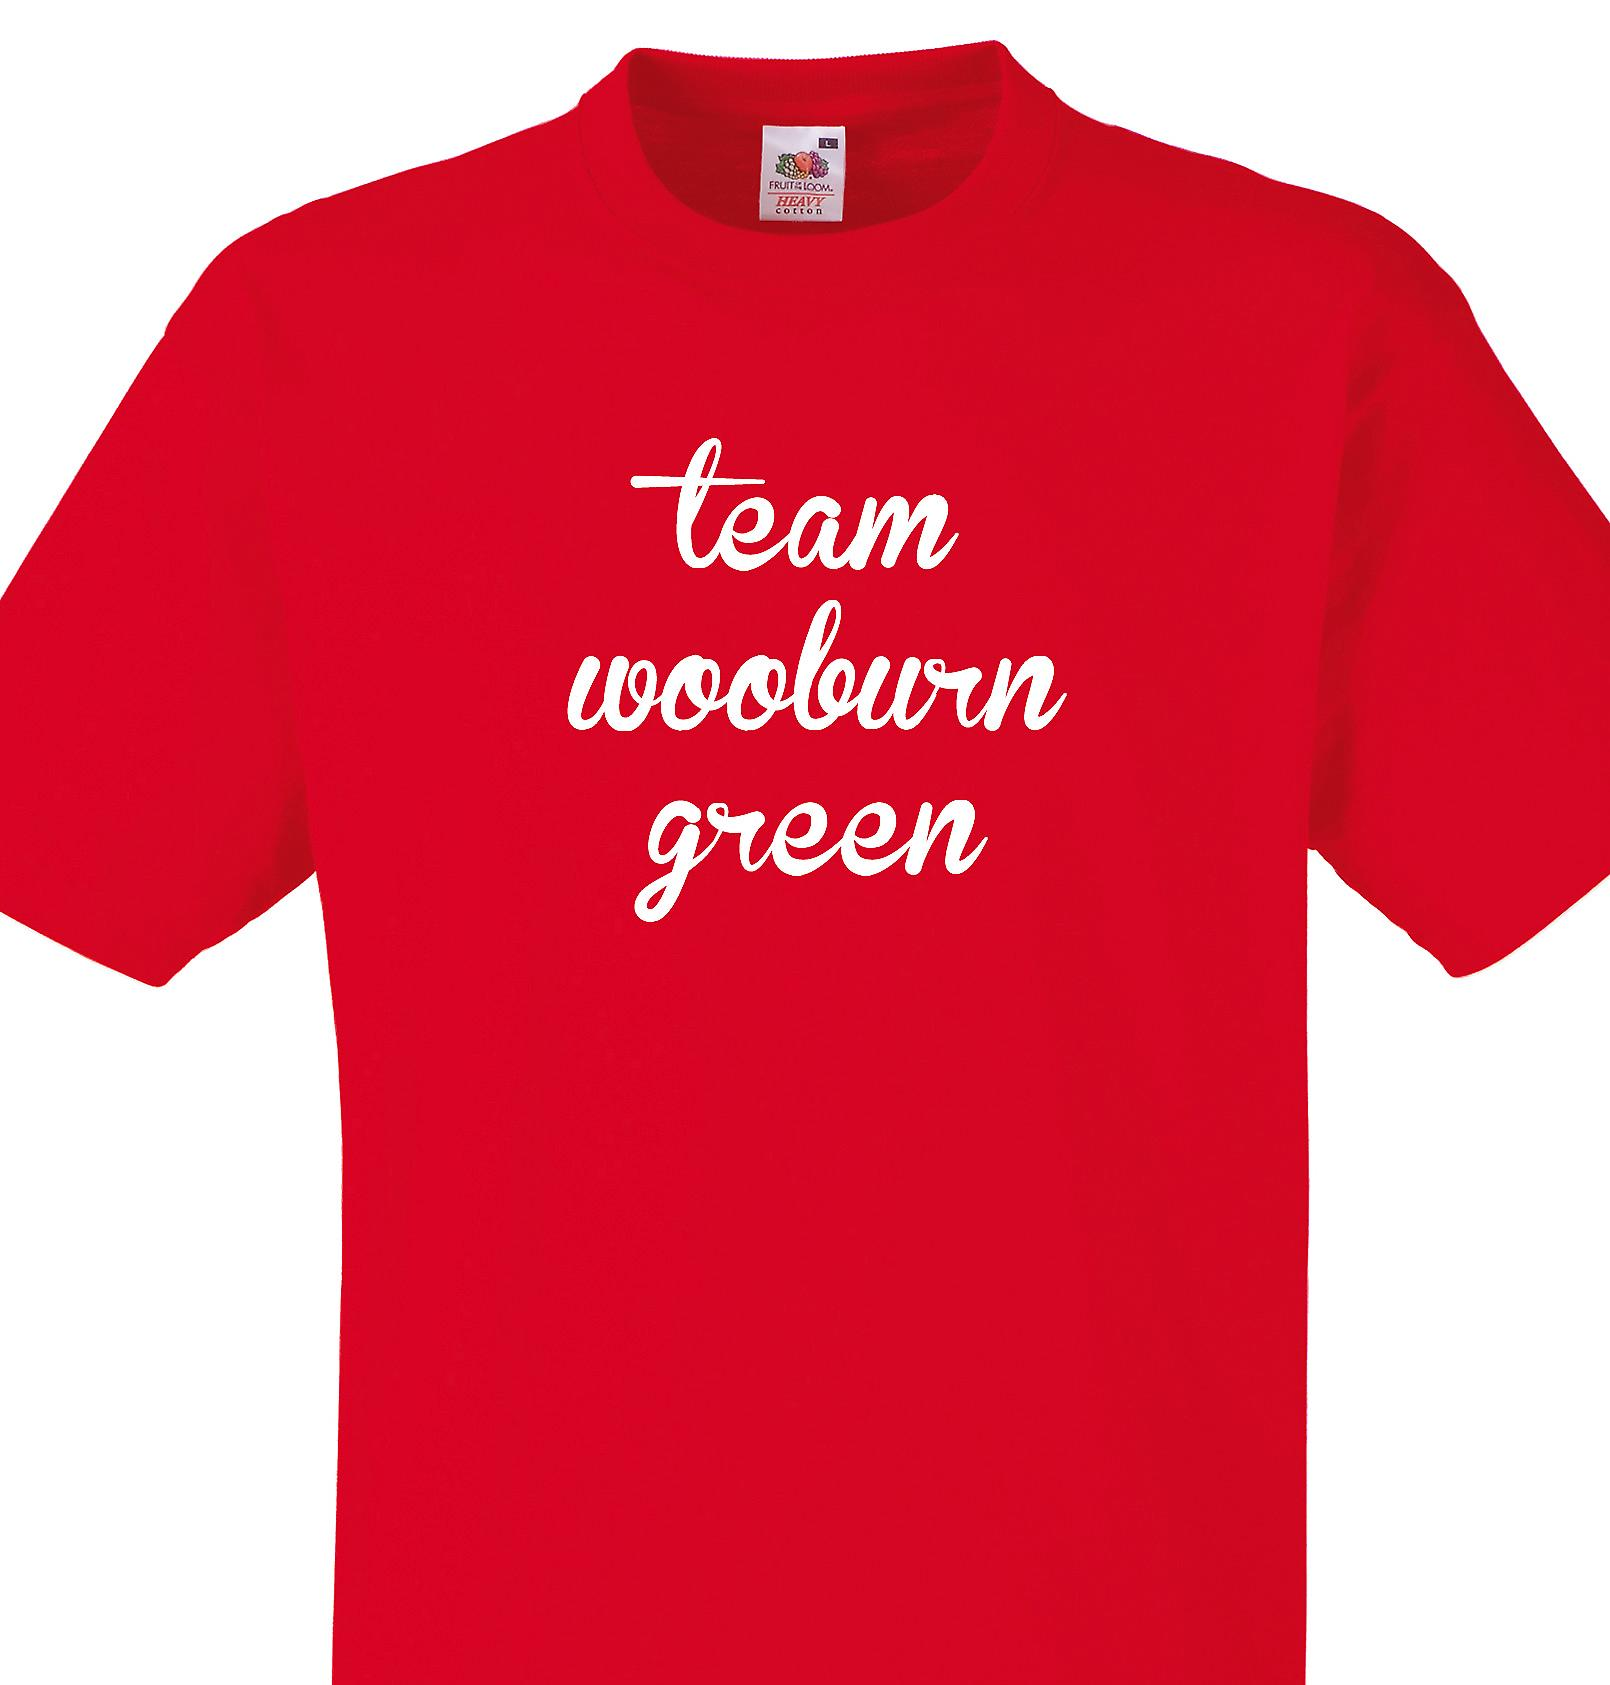 Team Wooburn green Red T shirt